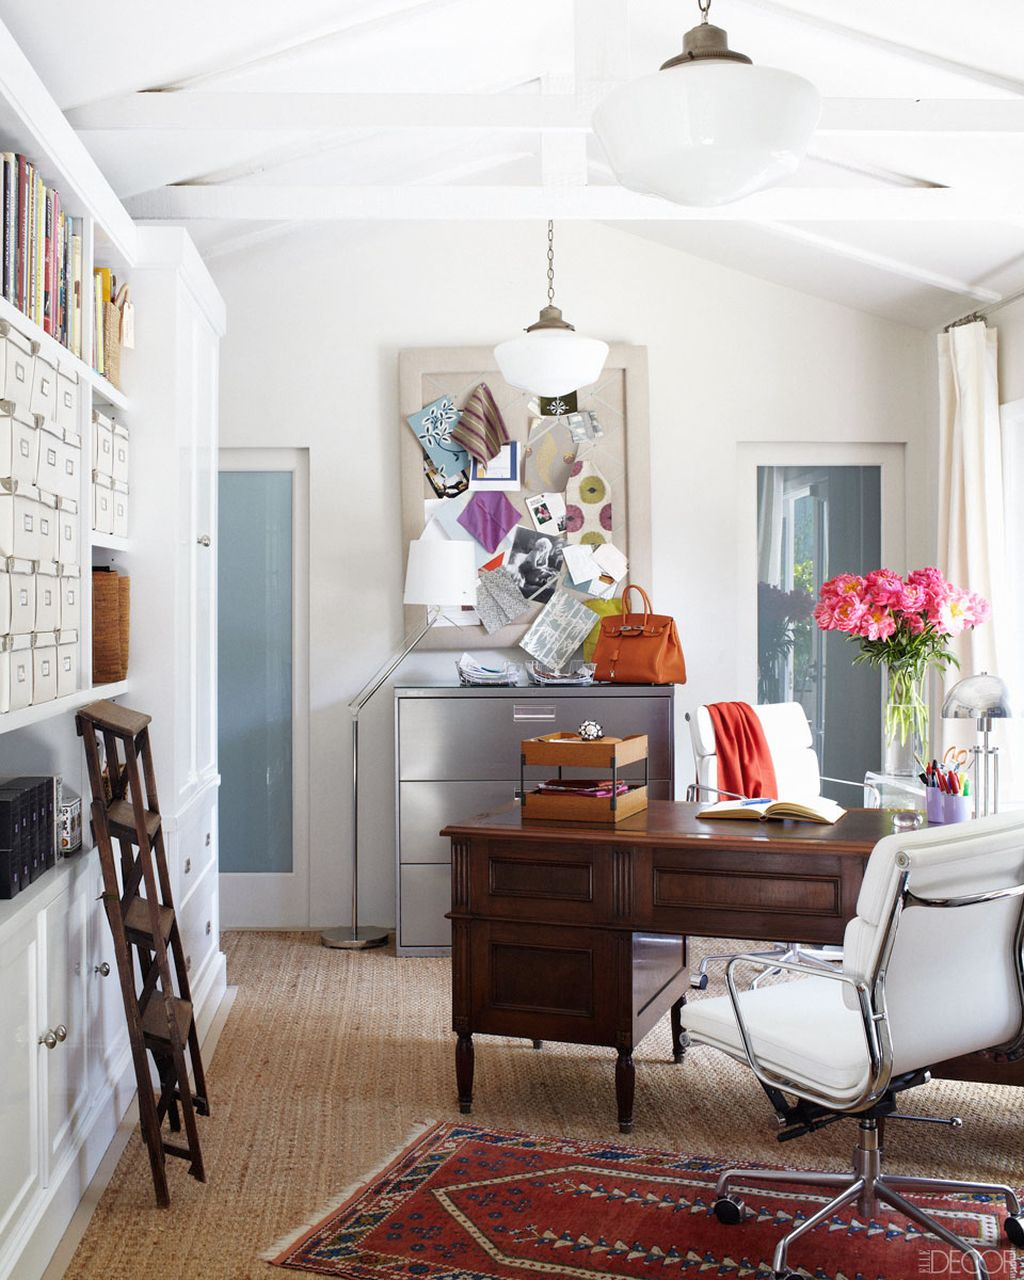 Home Office Room Design: 20 Inspiring Home Office Design Ideas For Small Spaces